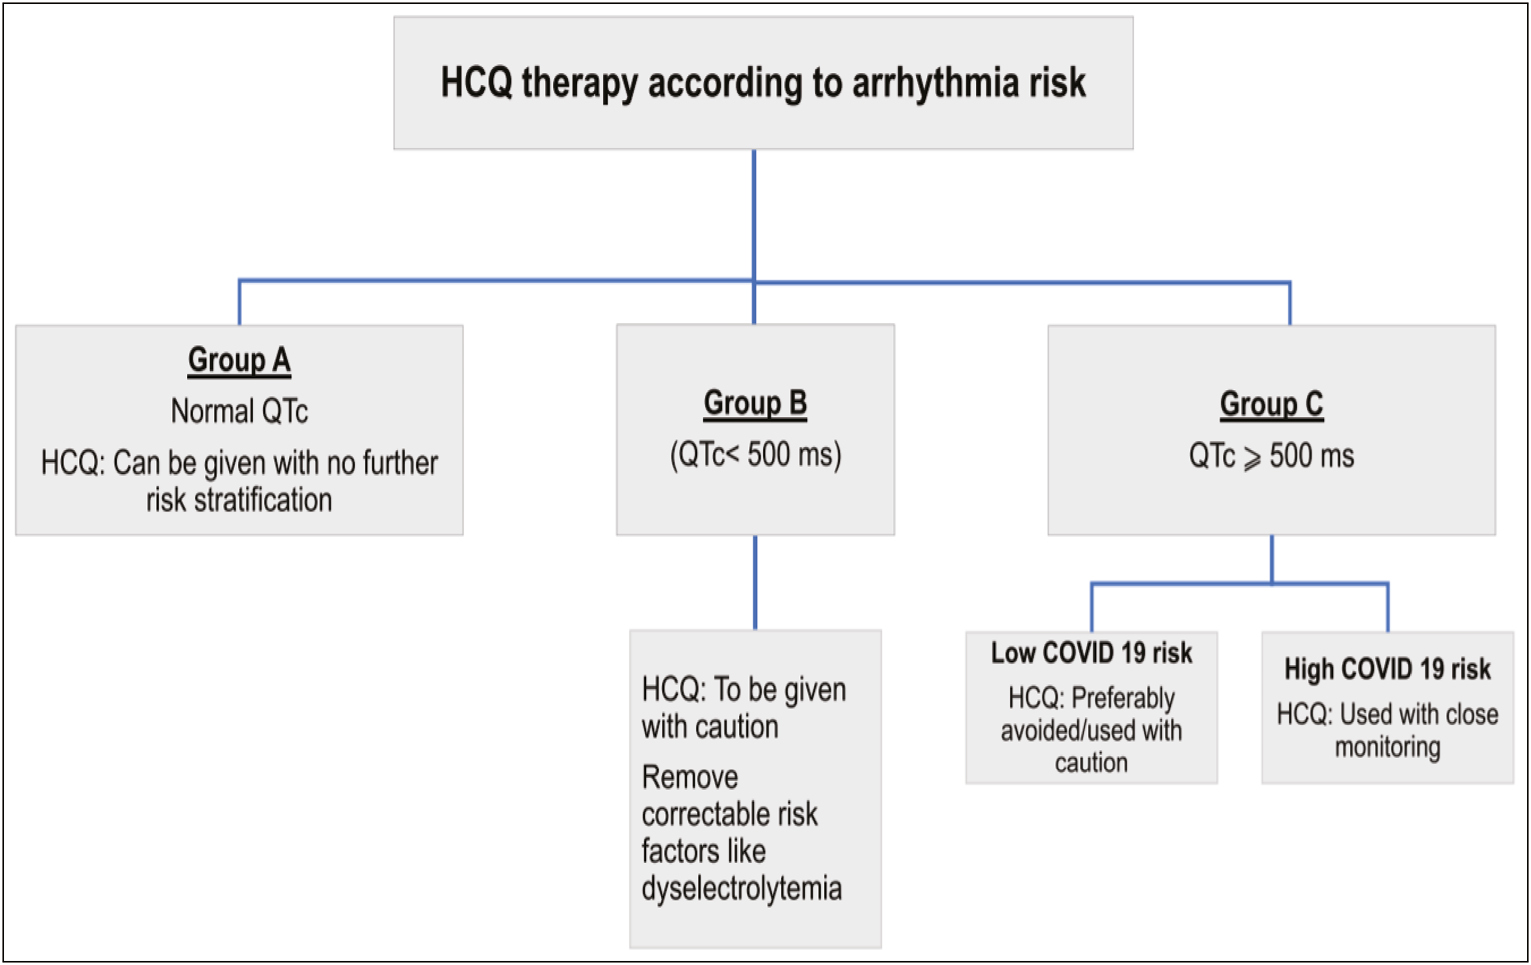 Figure 1: Hydroxychloroquine therapy according to cardiovascular risk. 